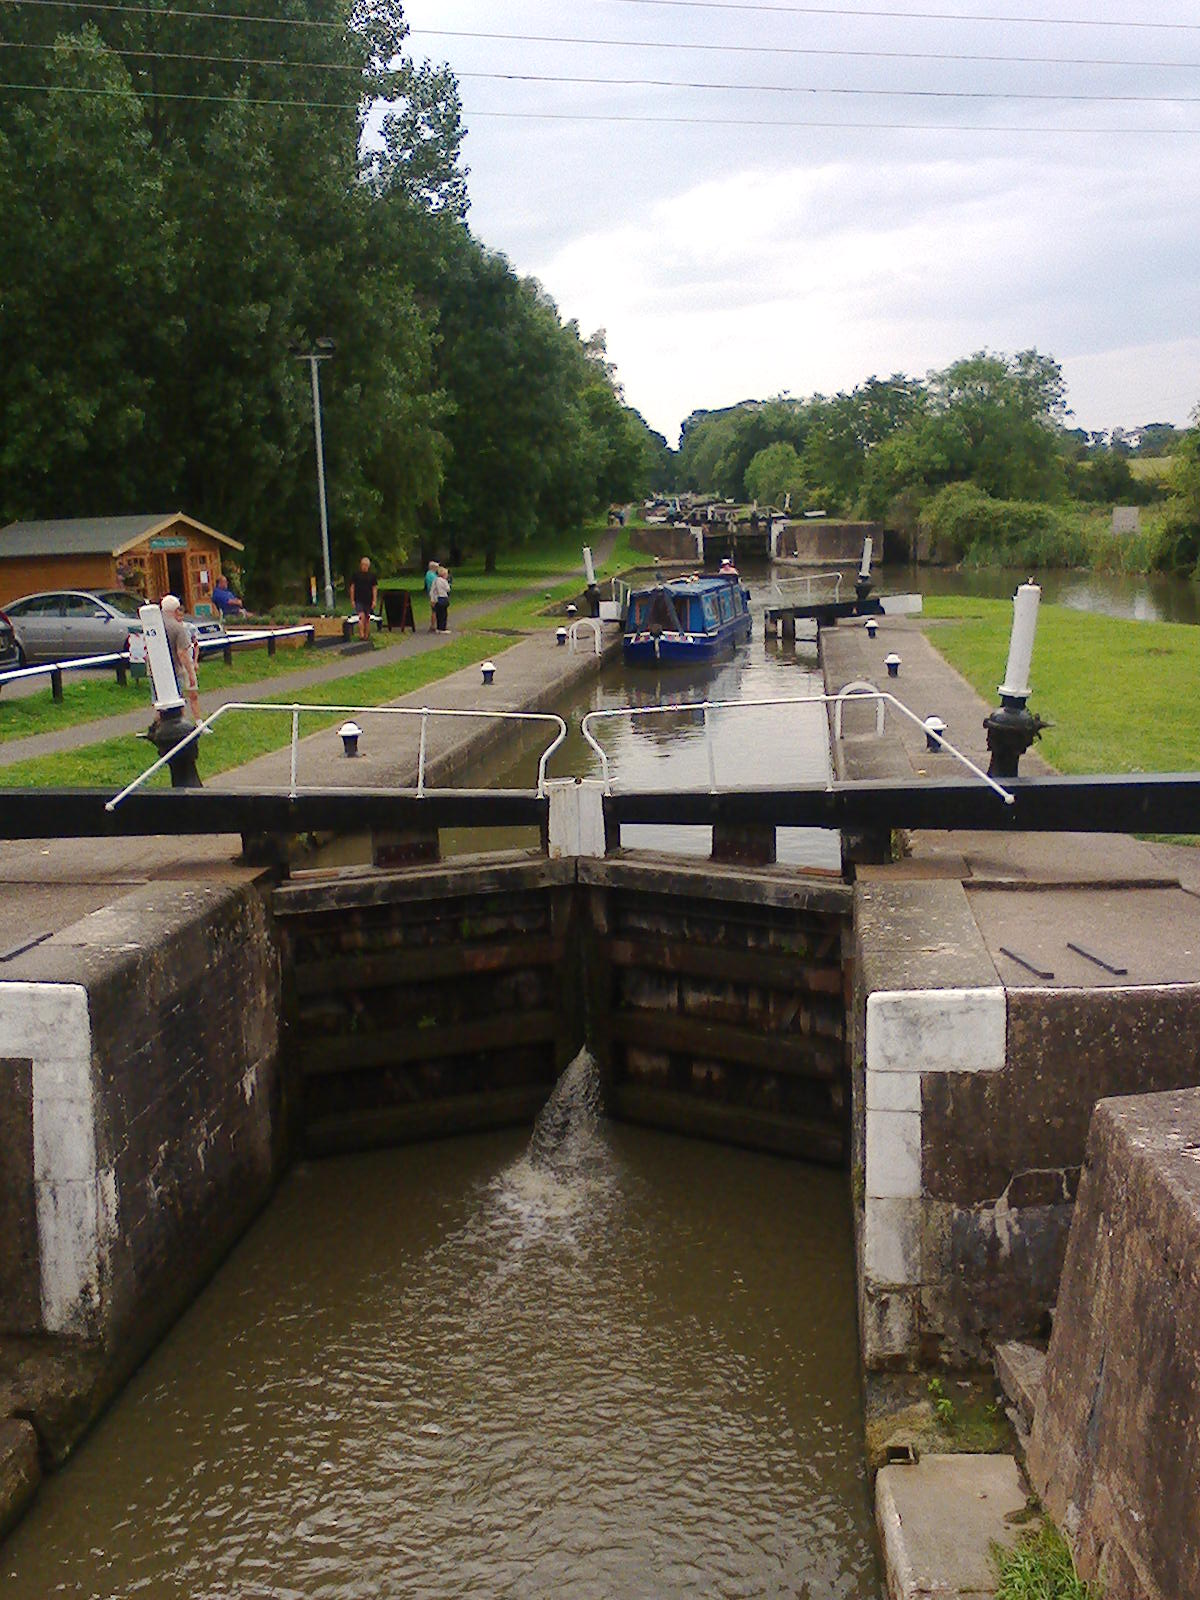 Hatton Locks image 2